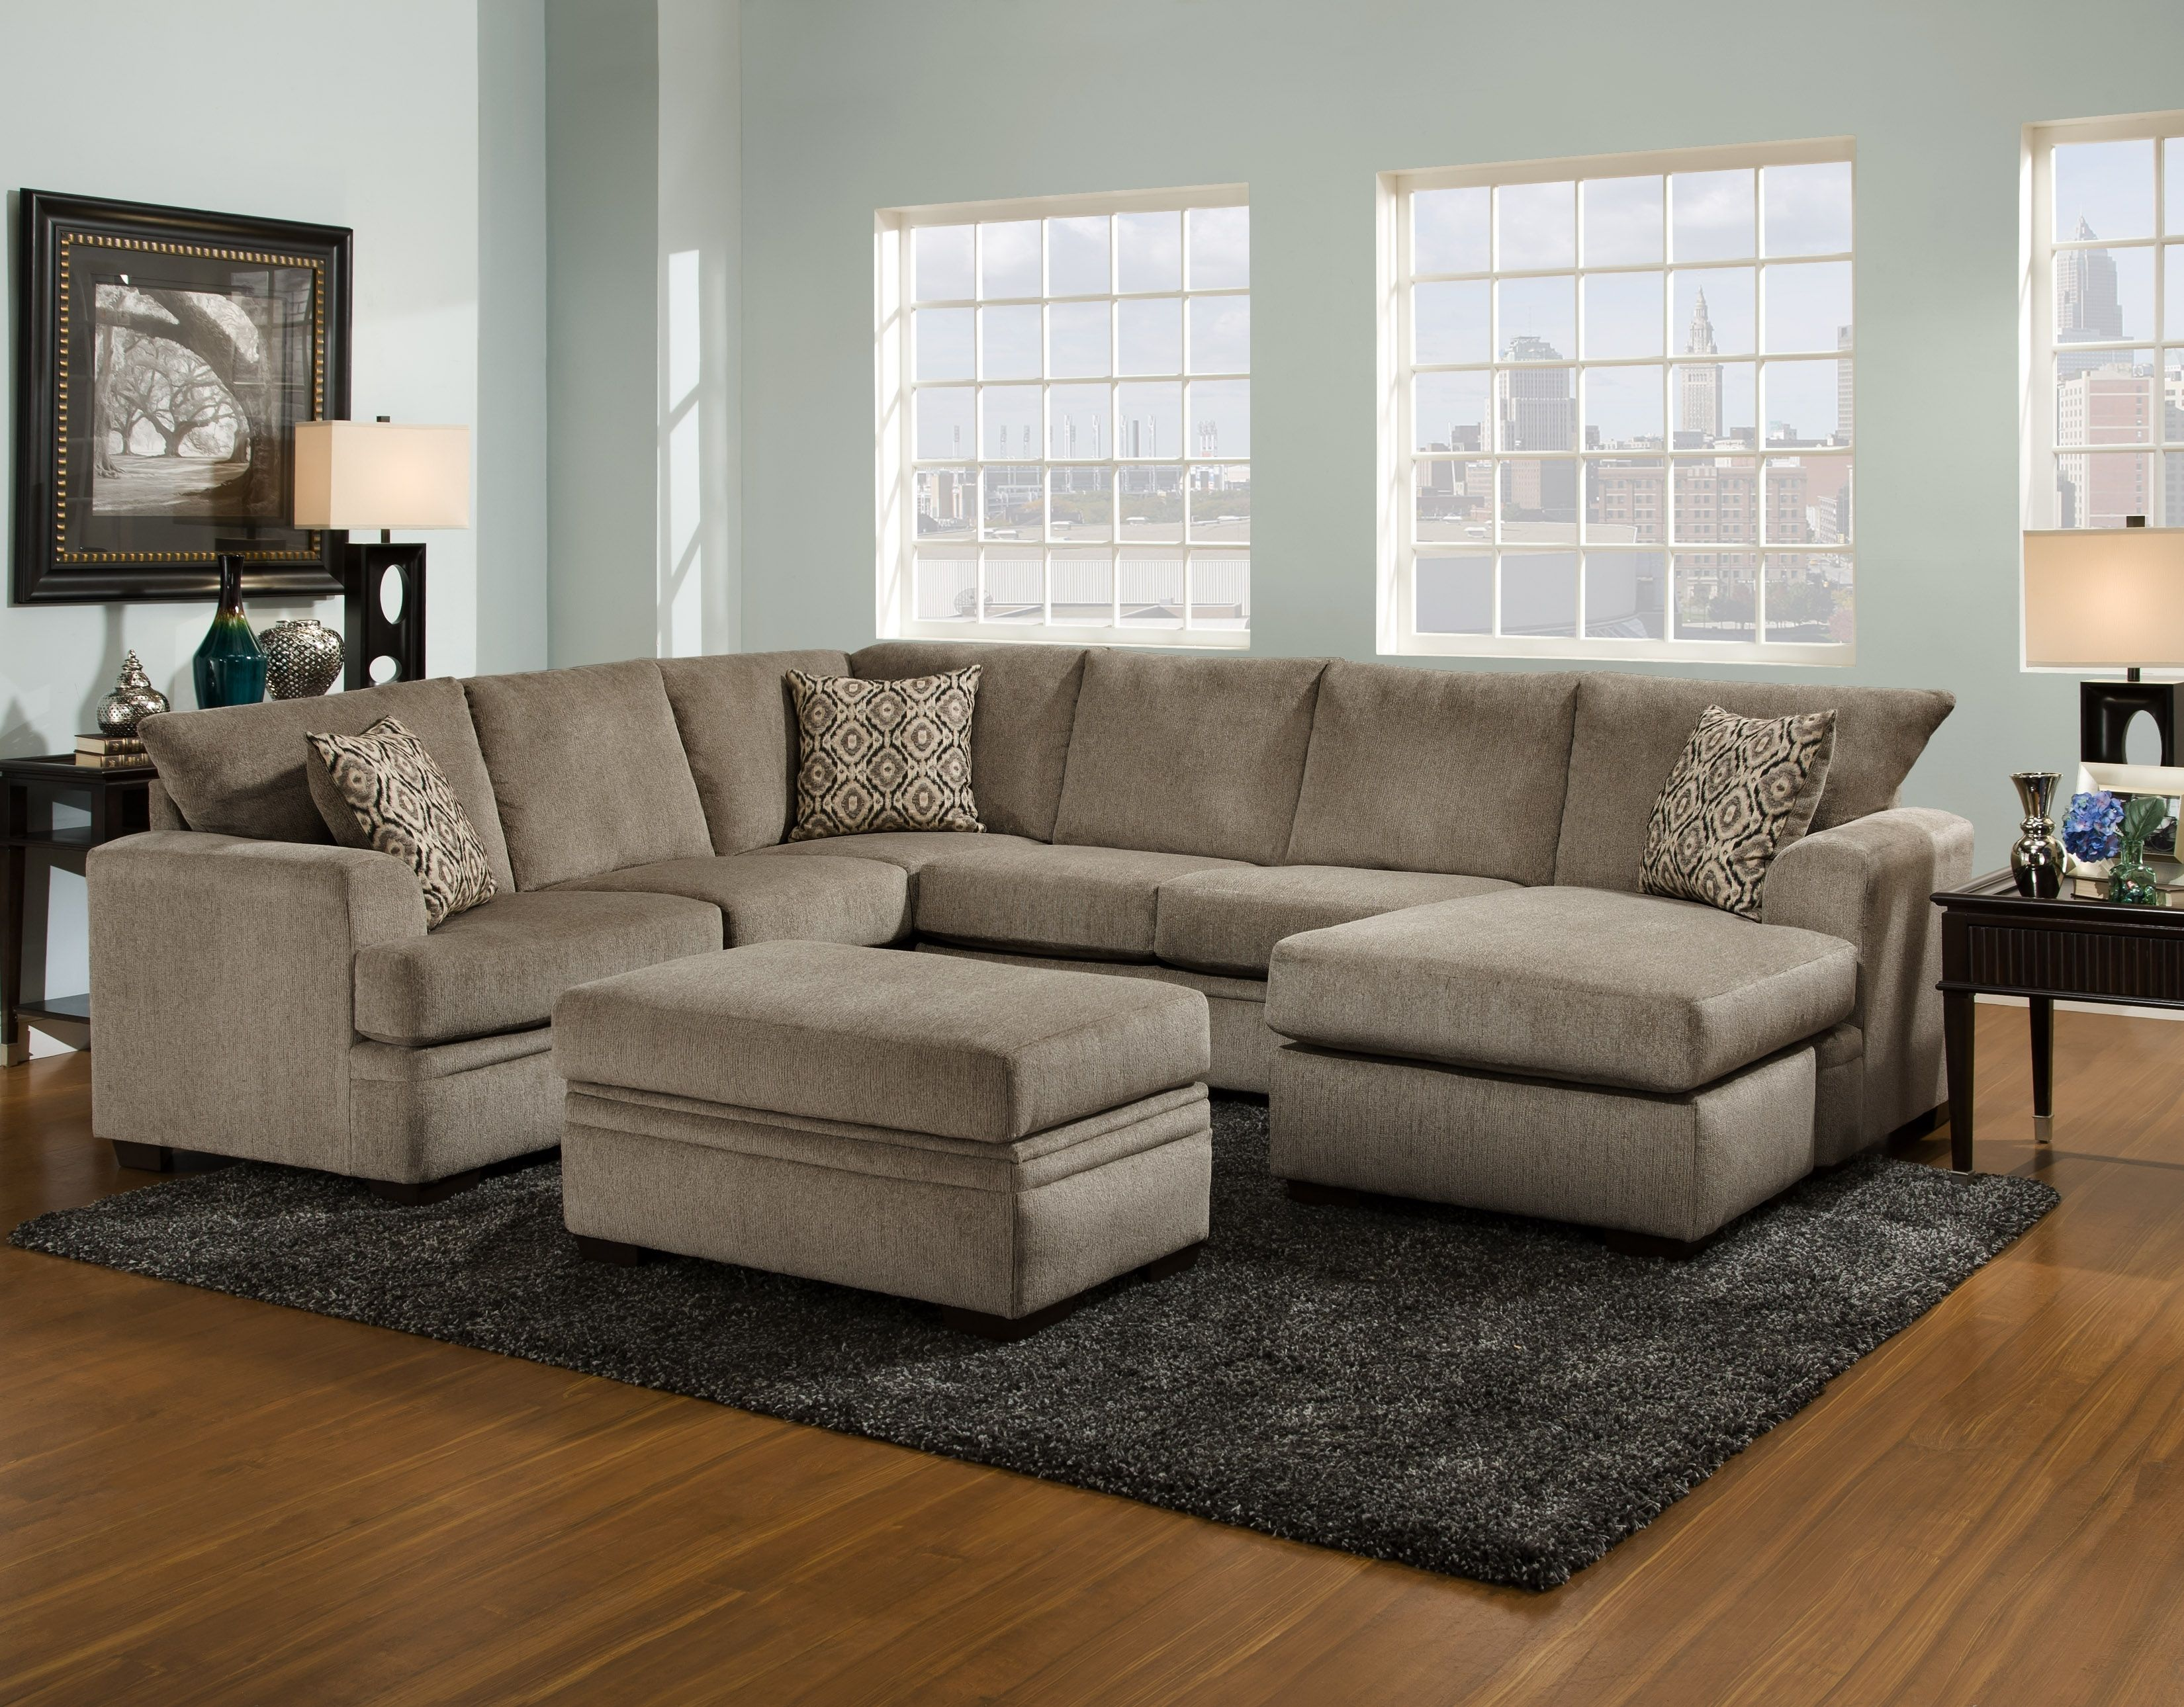 8 Ideas of Janesville Wi Sectional Sofas  Sofa Ideas  Chelsea